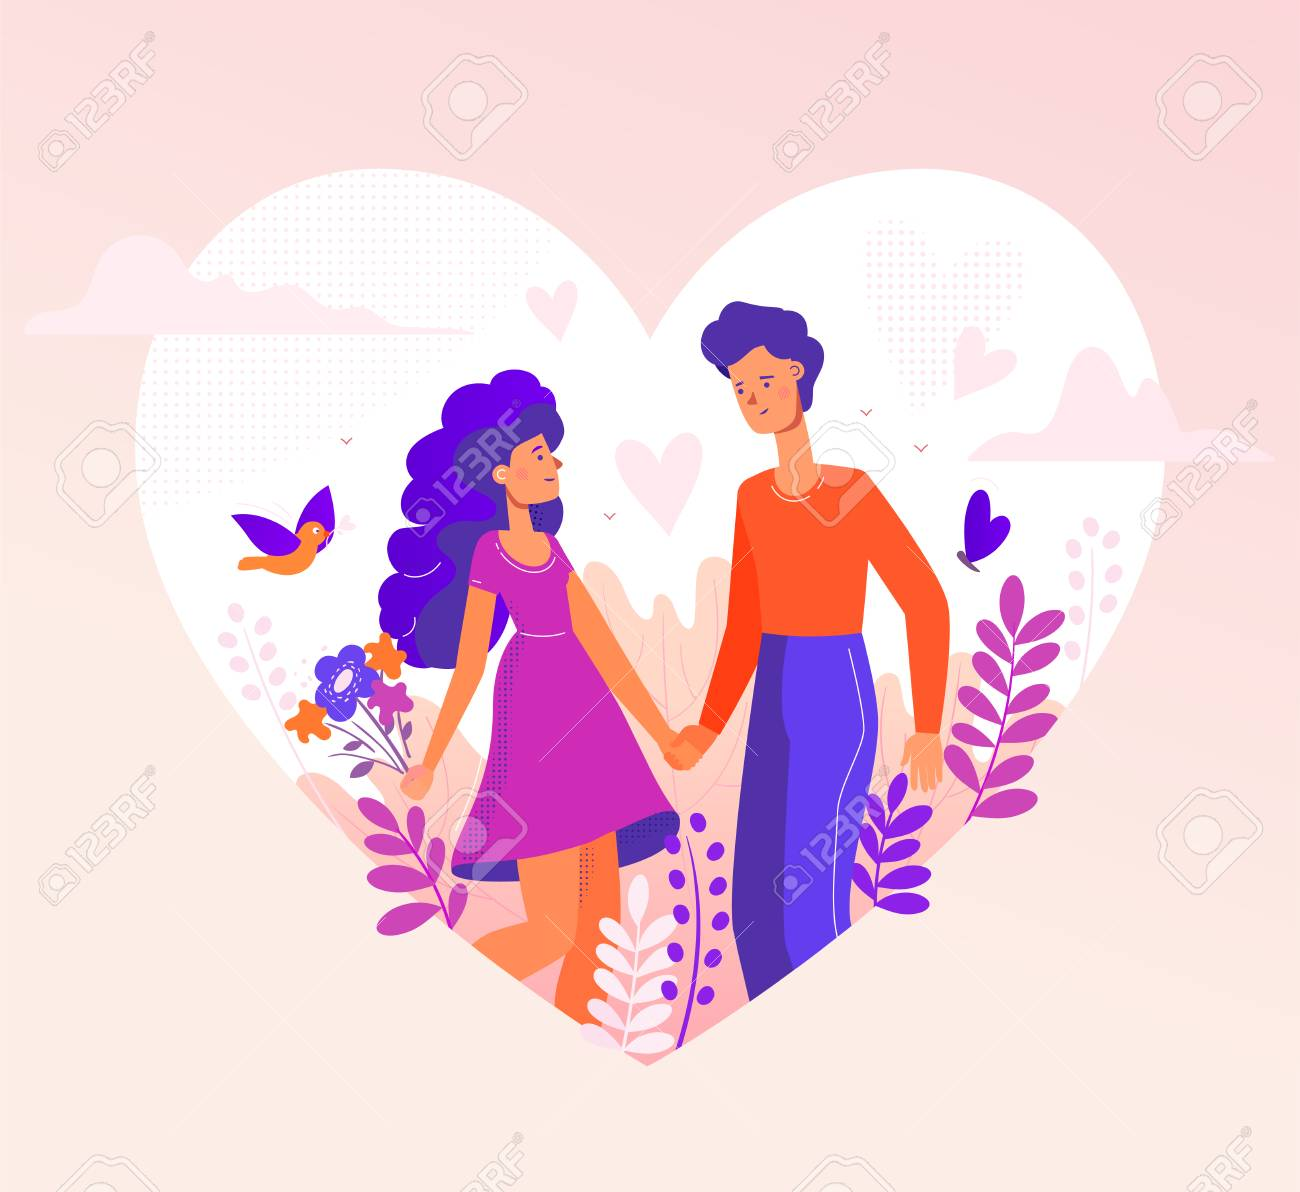 Romantic couple - modern flat design style illustration in a heart shape on pink background. A composition with male, female characters, boy and girl on a date, holding hands, images of birds, flowers - 125986609